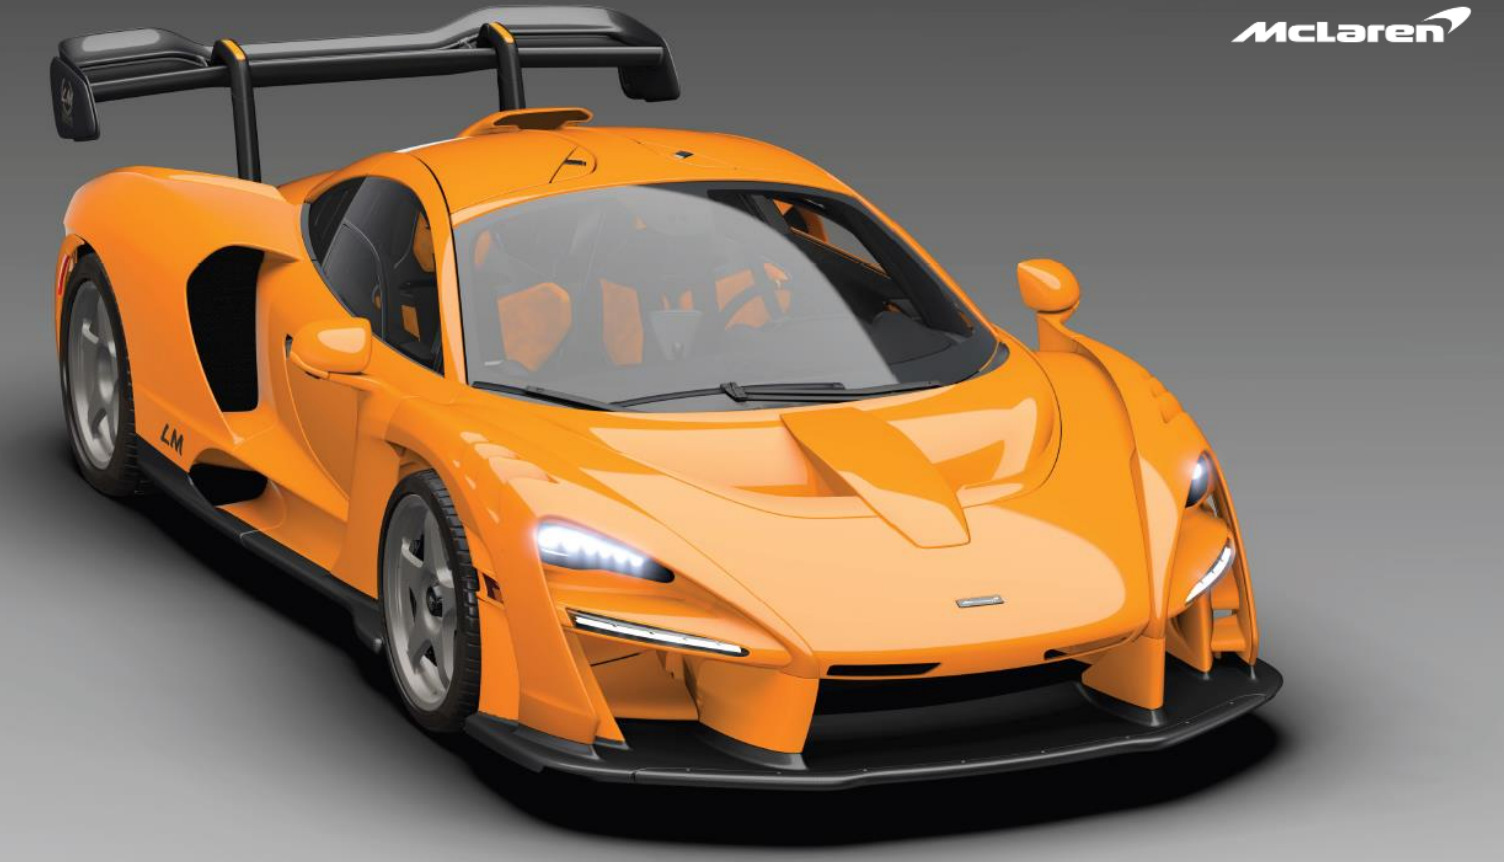 Mc Laren Senna 1-20 made